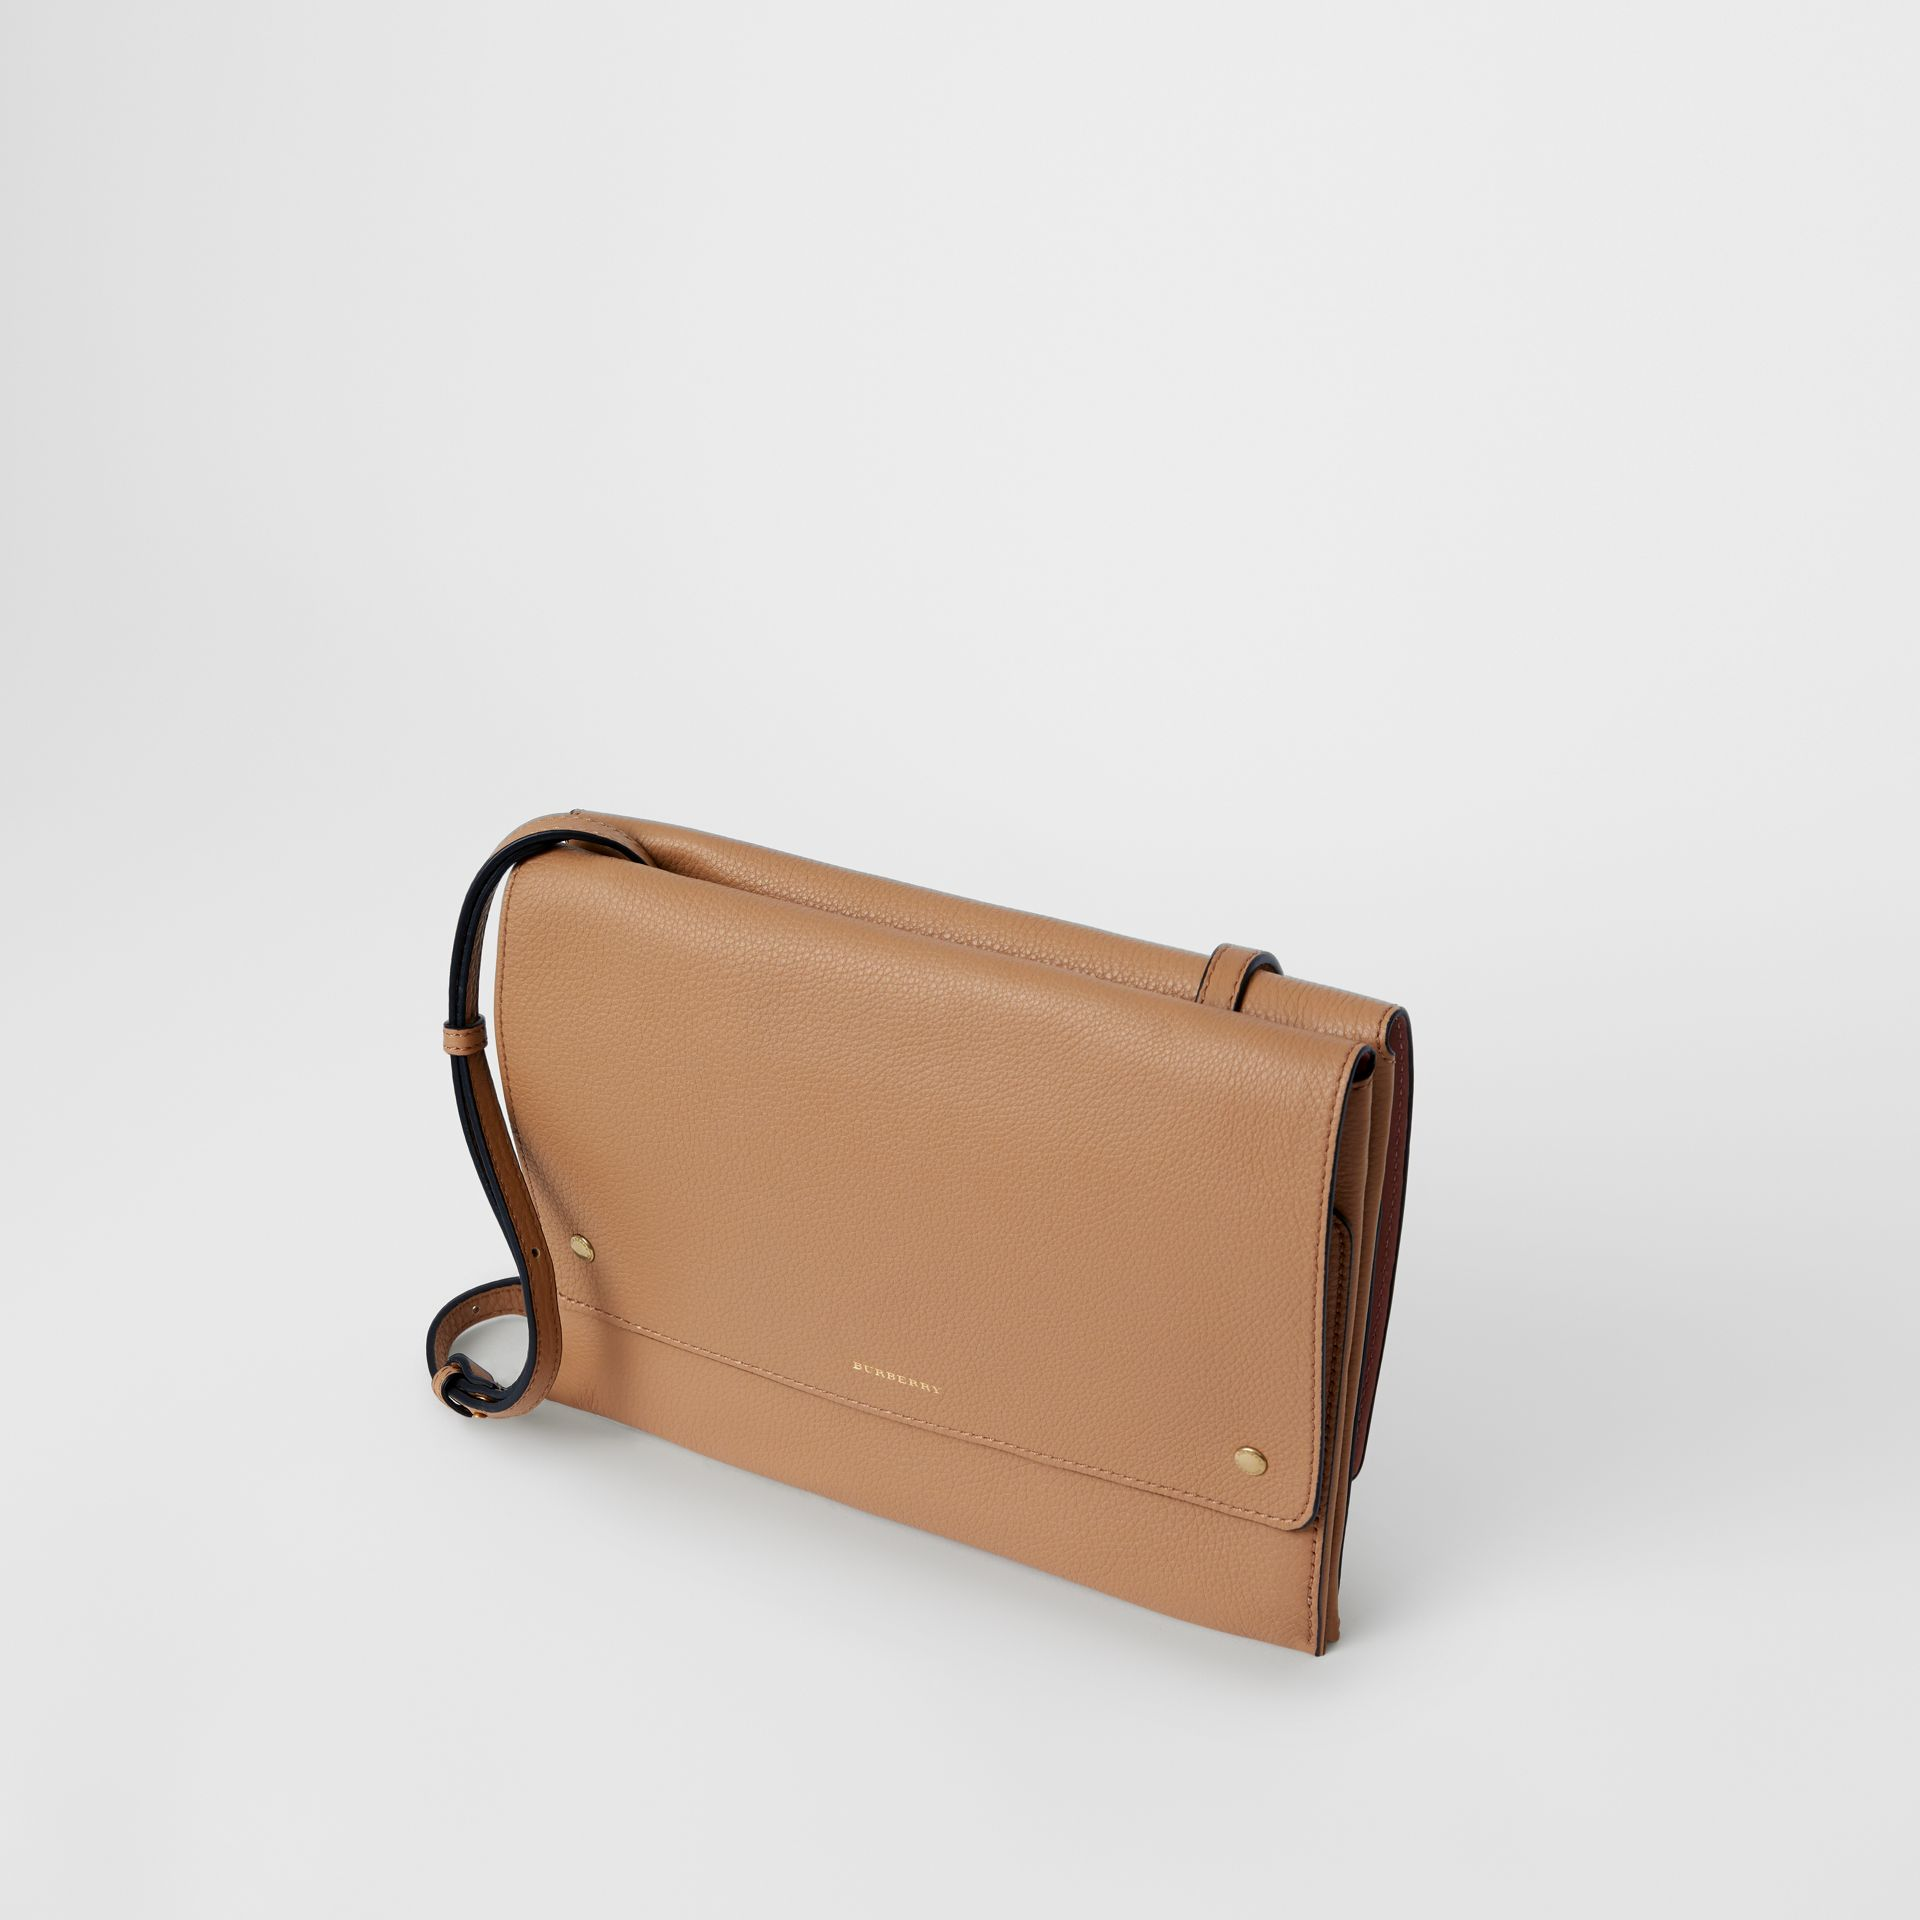 Leather Envelope Crossbody Bag in Light Camel - Women | Burberry United States - gallery image 4